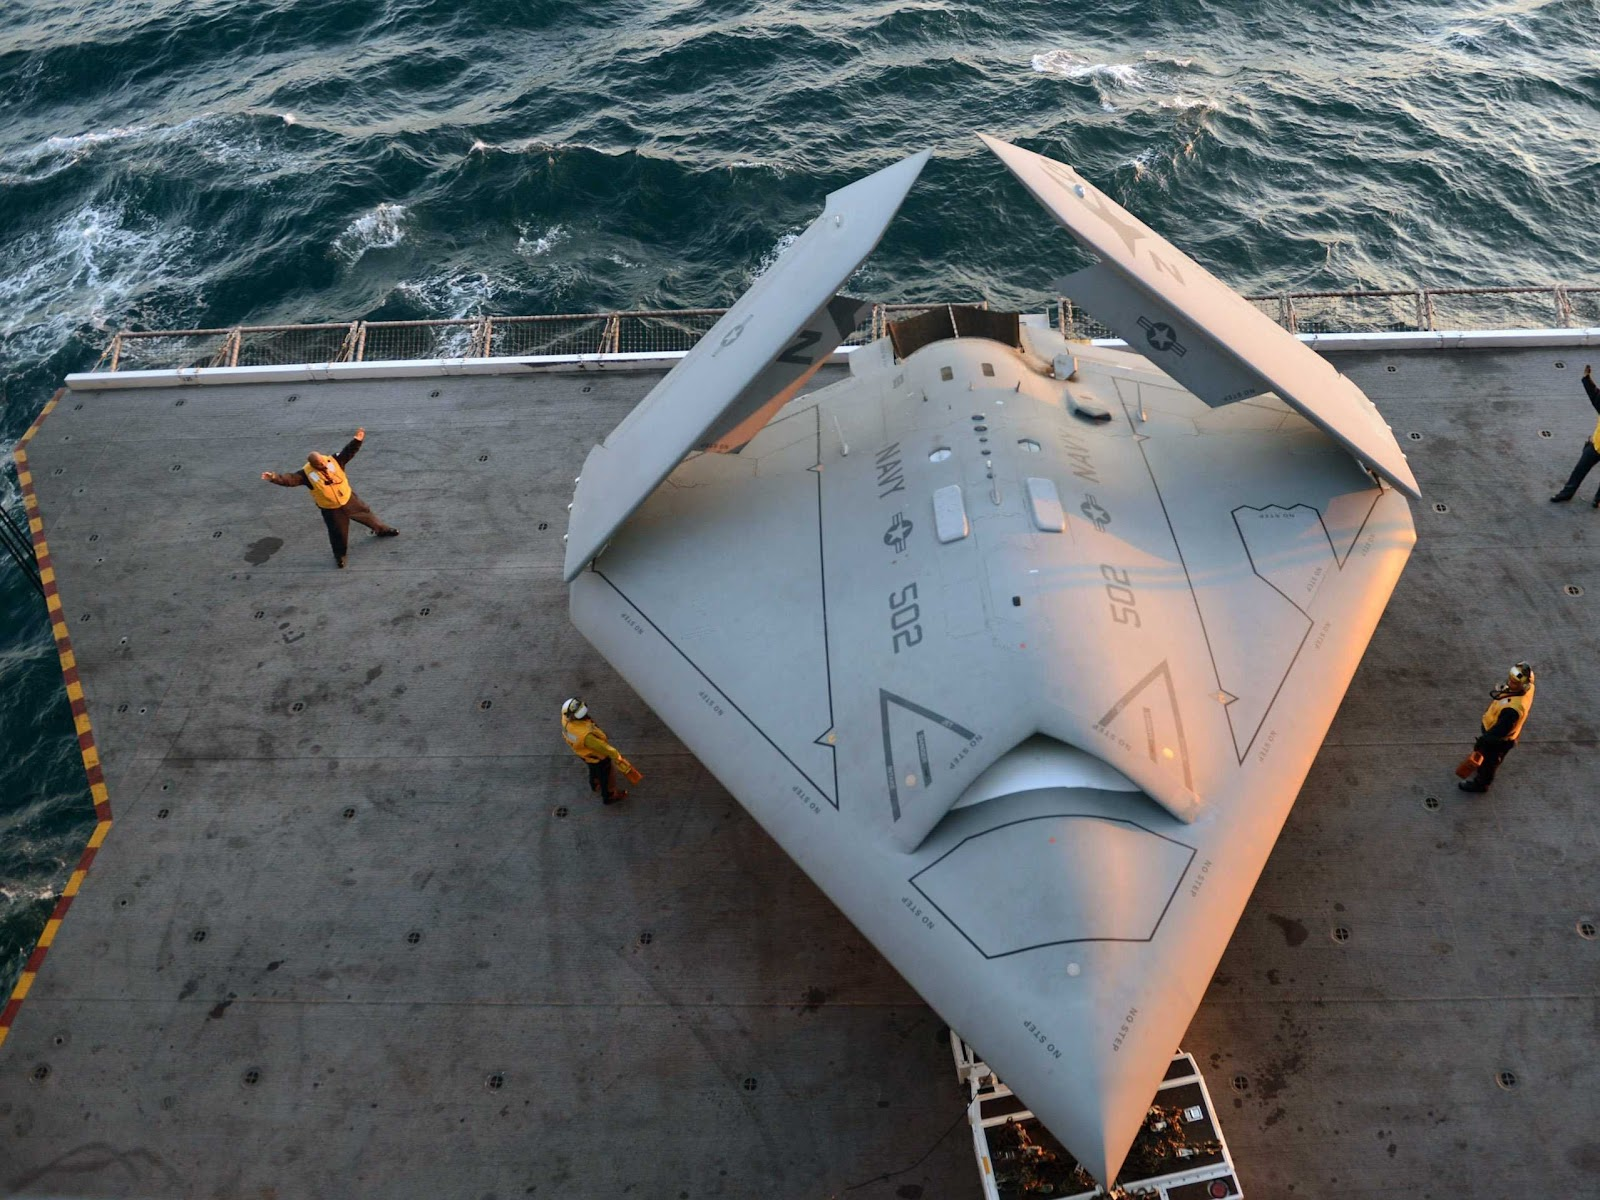 x-47b-drone-launch-from-carrier.jpg